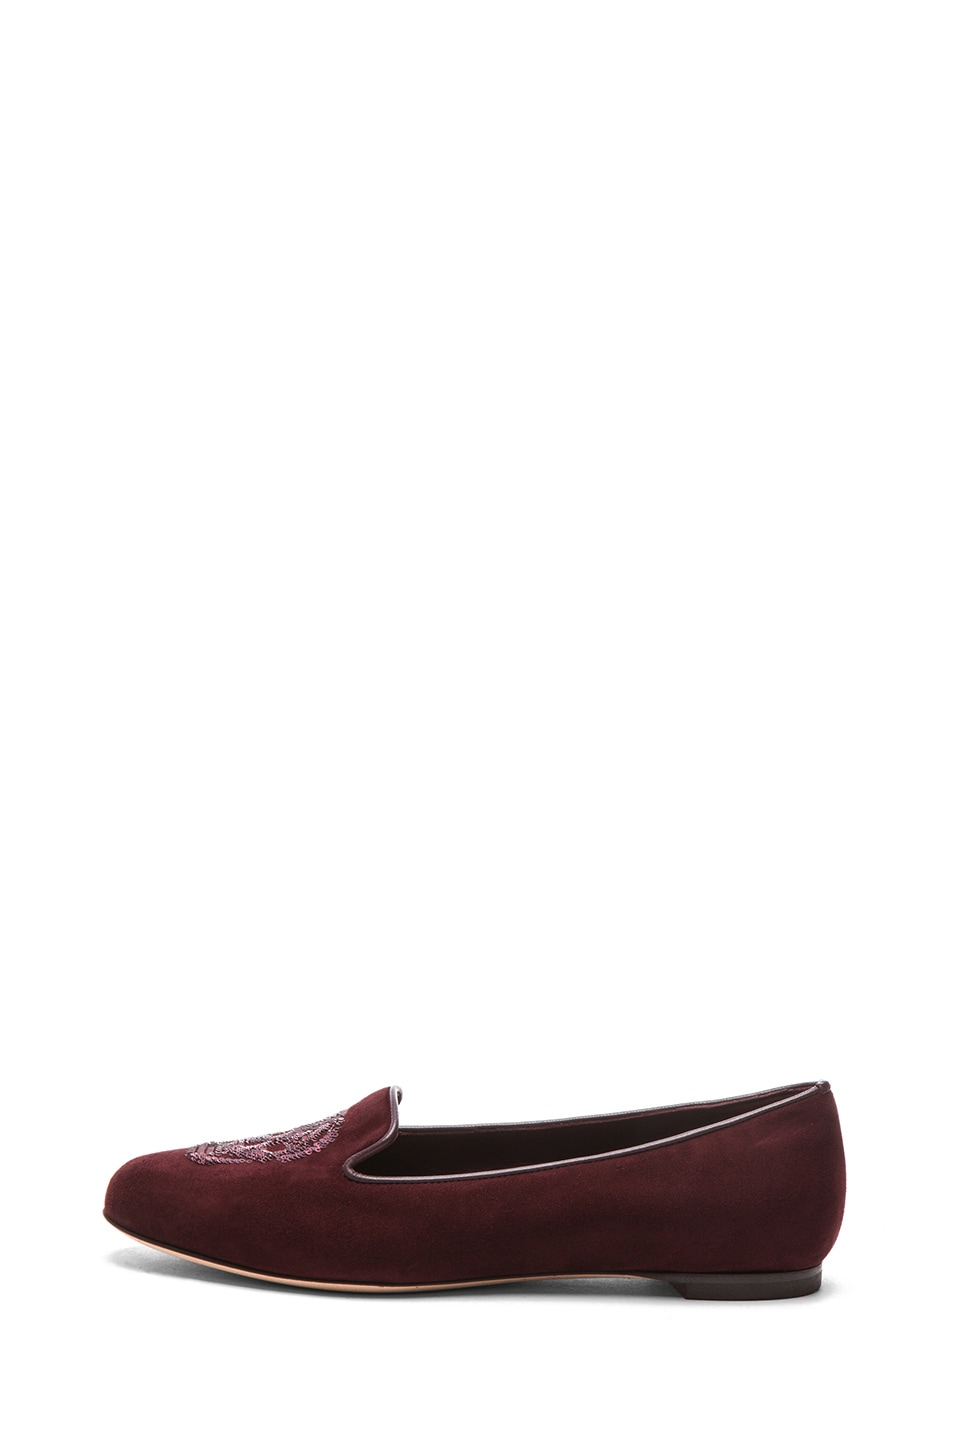 Image 1 of Alexander McQueen Skull Suede Slippers in Oxblood